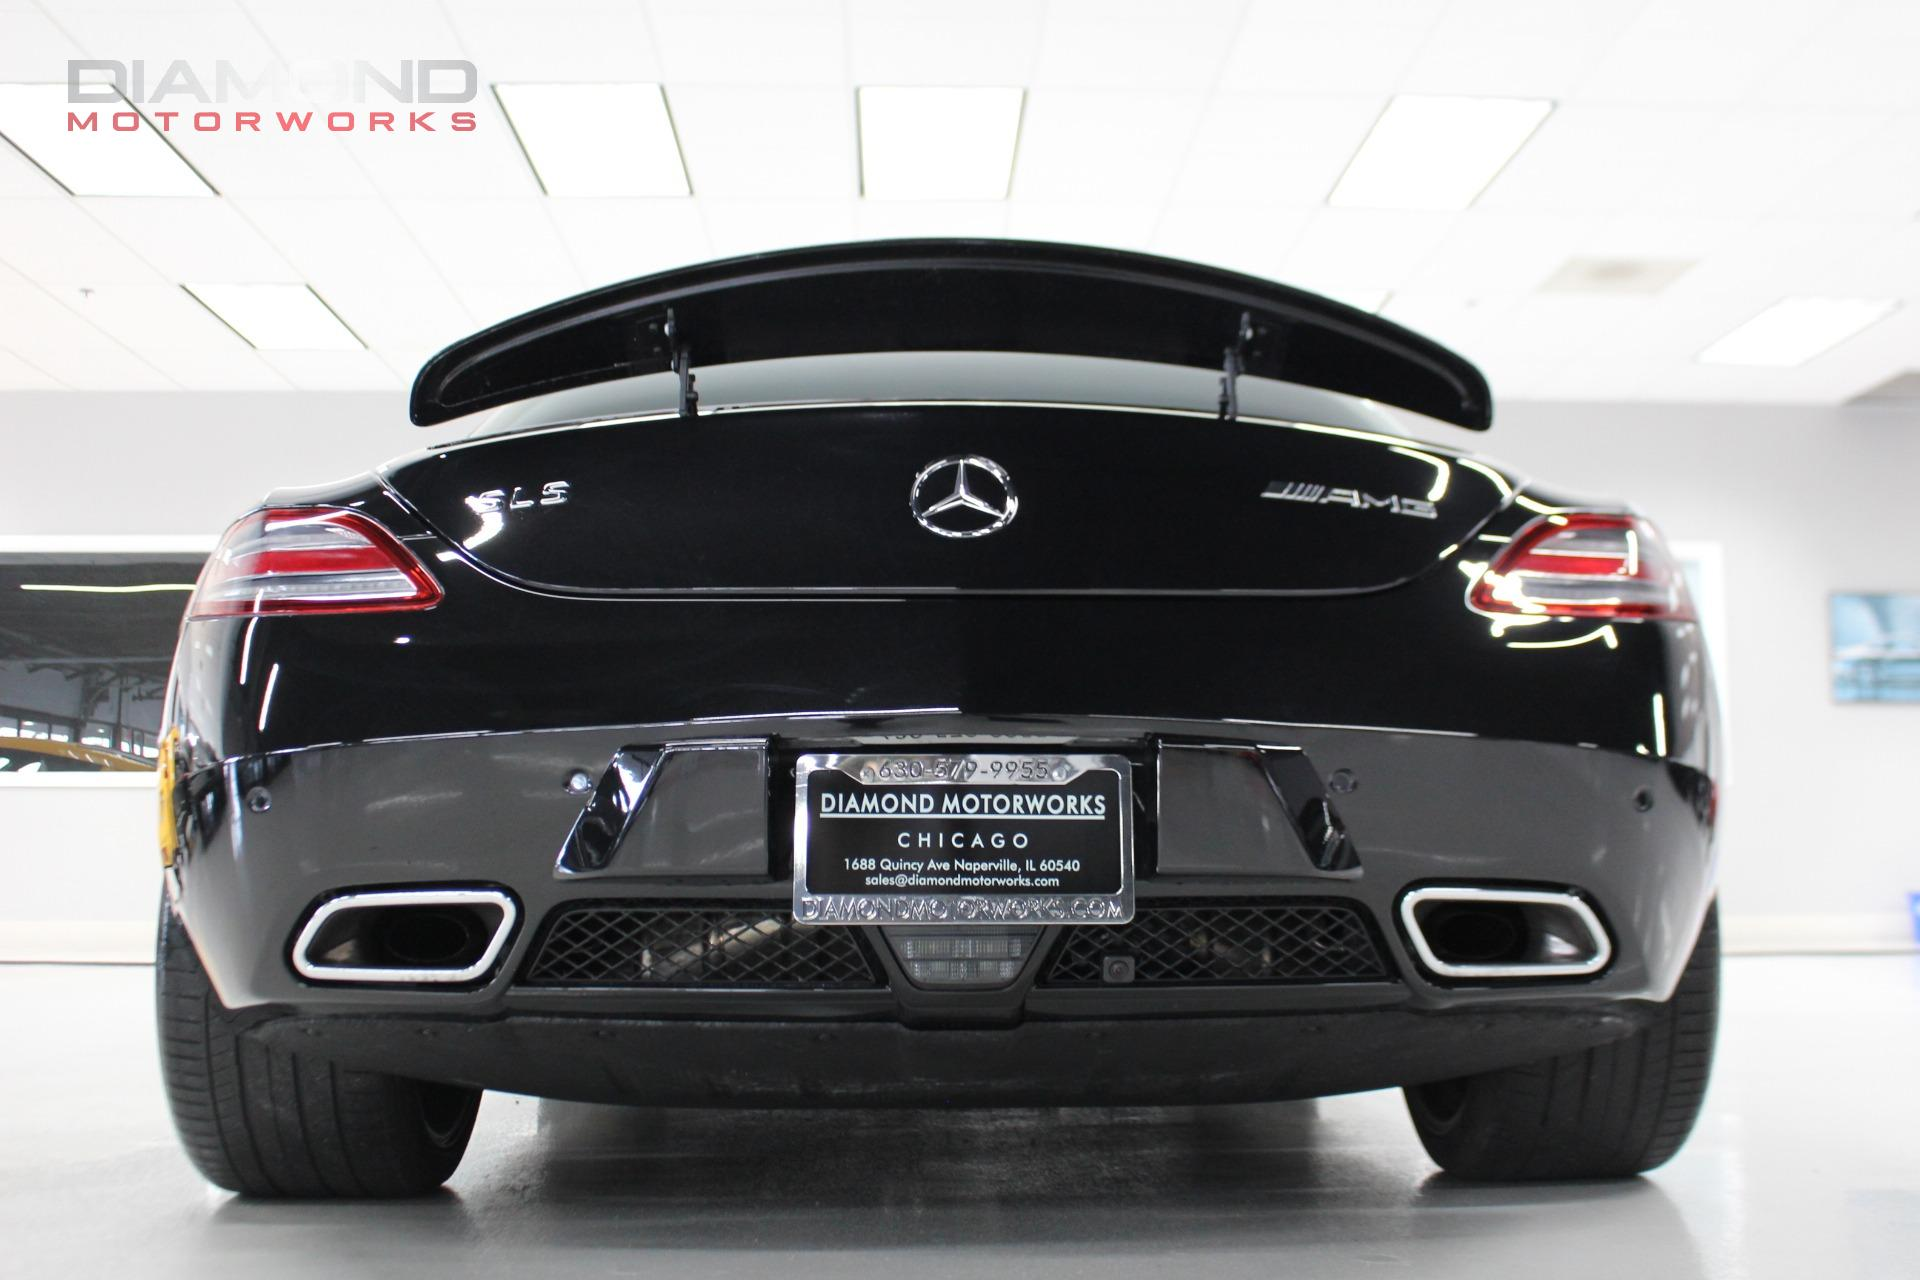 2012 mercedes benz sls amg gullwing coupe stock 006389 for Mercedes benz slr amg price